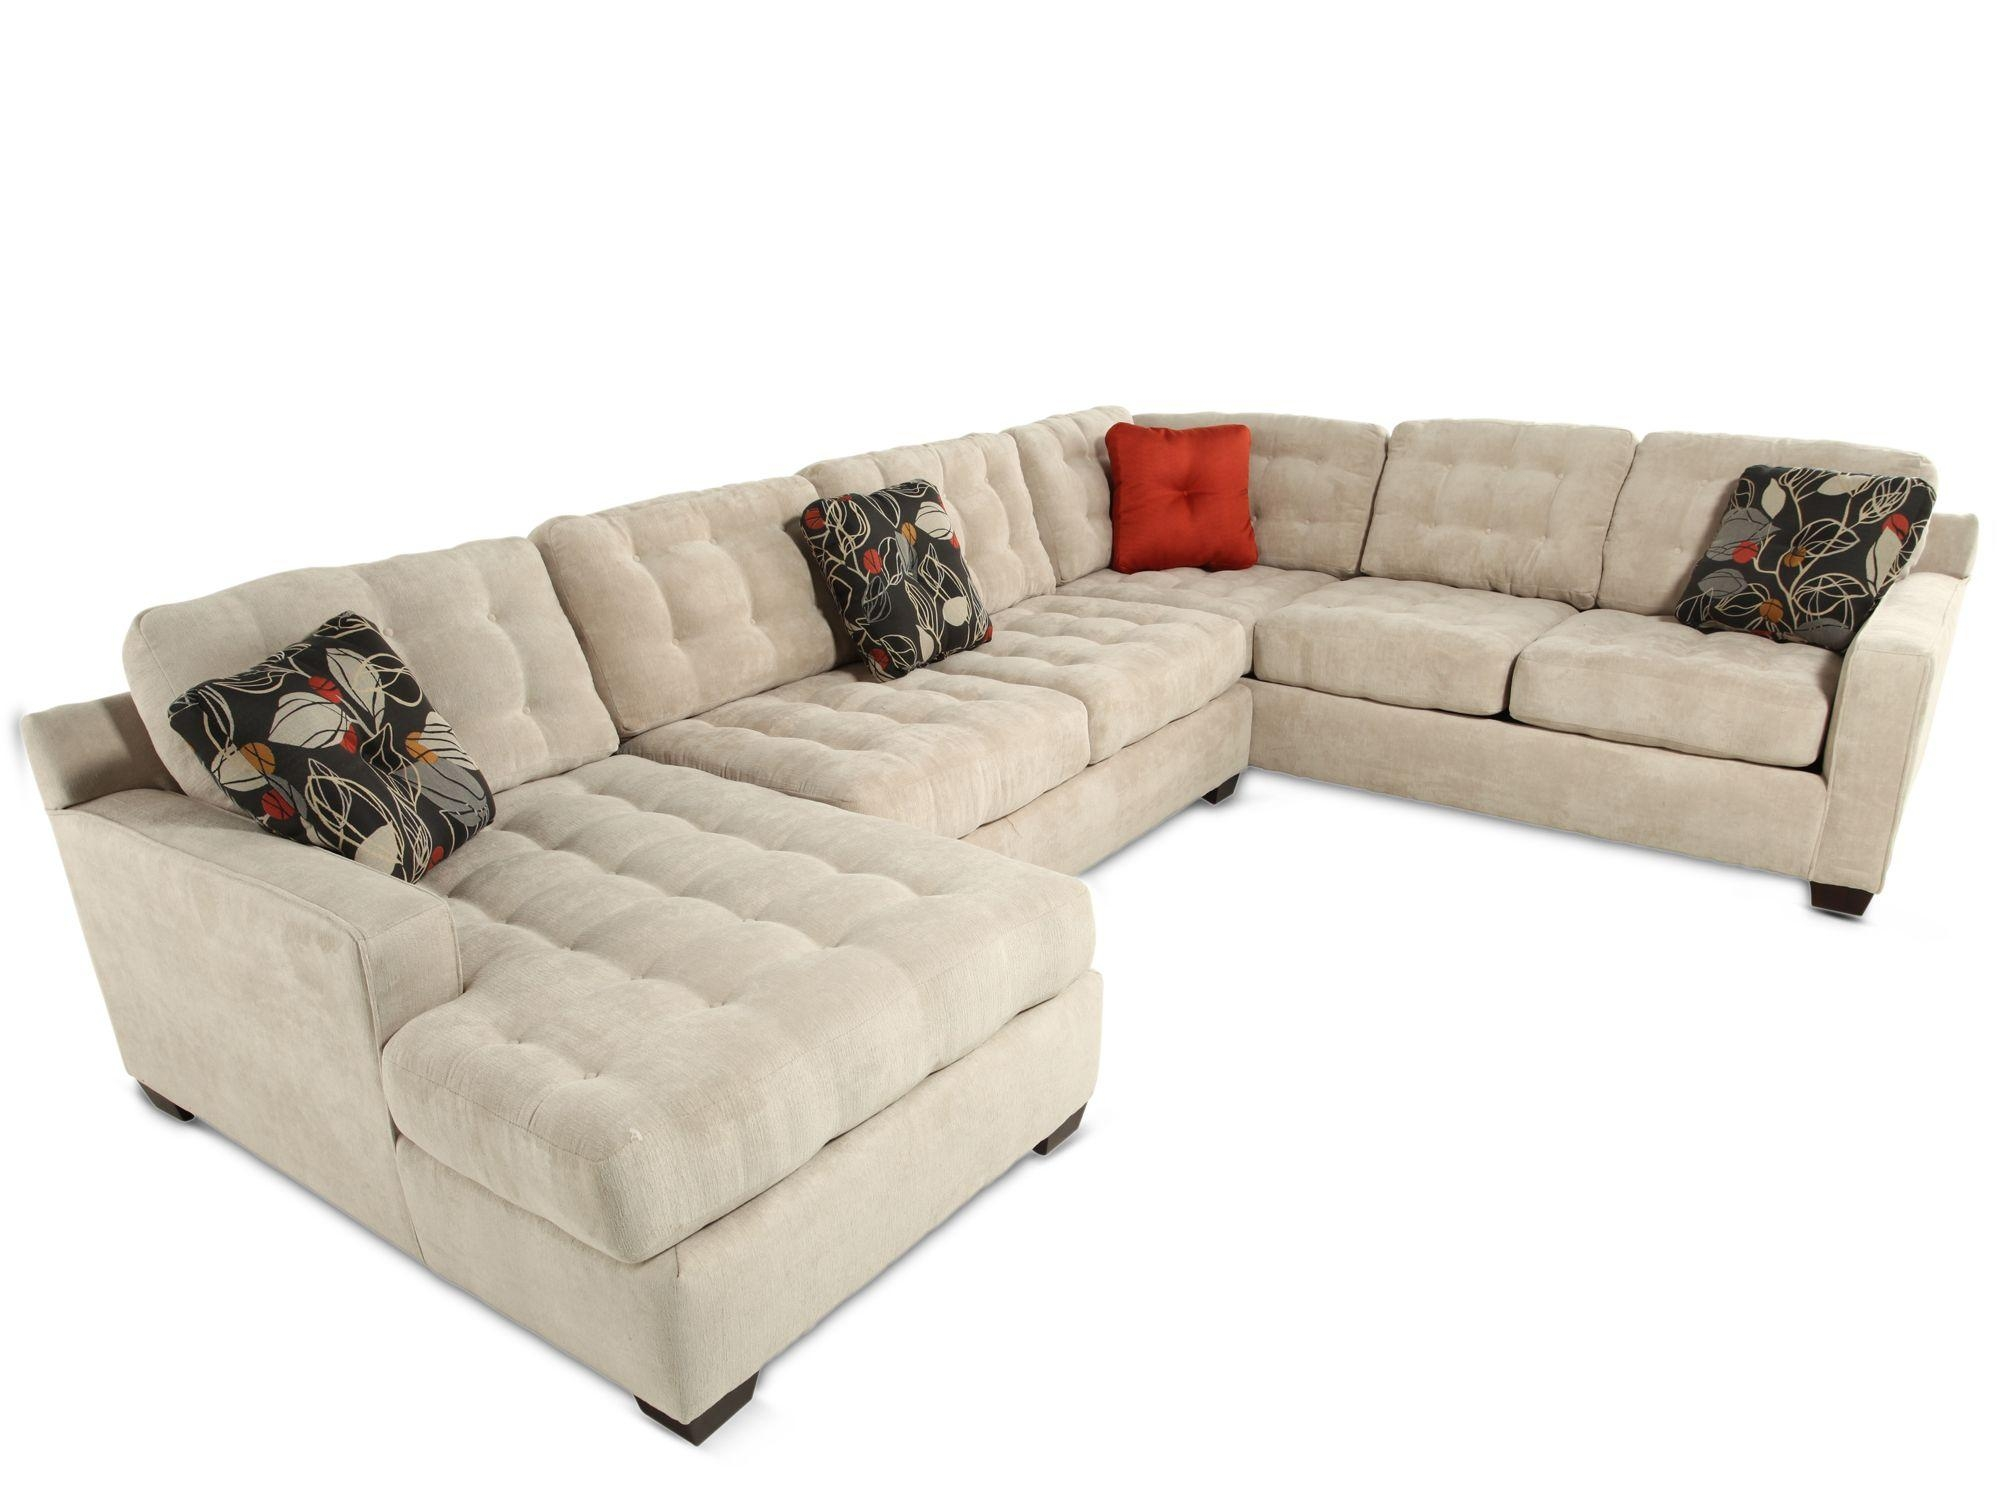 Sofas Center : Formal Living Room Sofa Design Broyhill Furniture With Broyhill Sectional Sofas (Image 12 of 15)